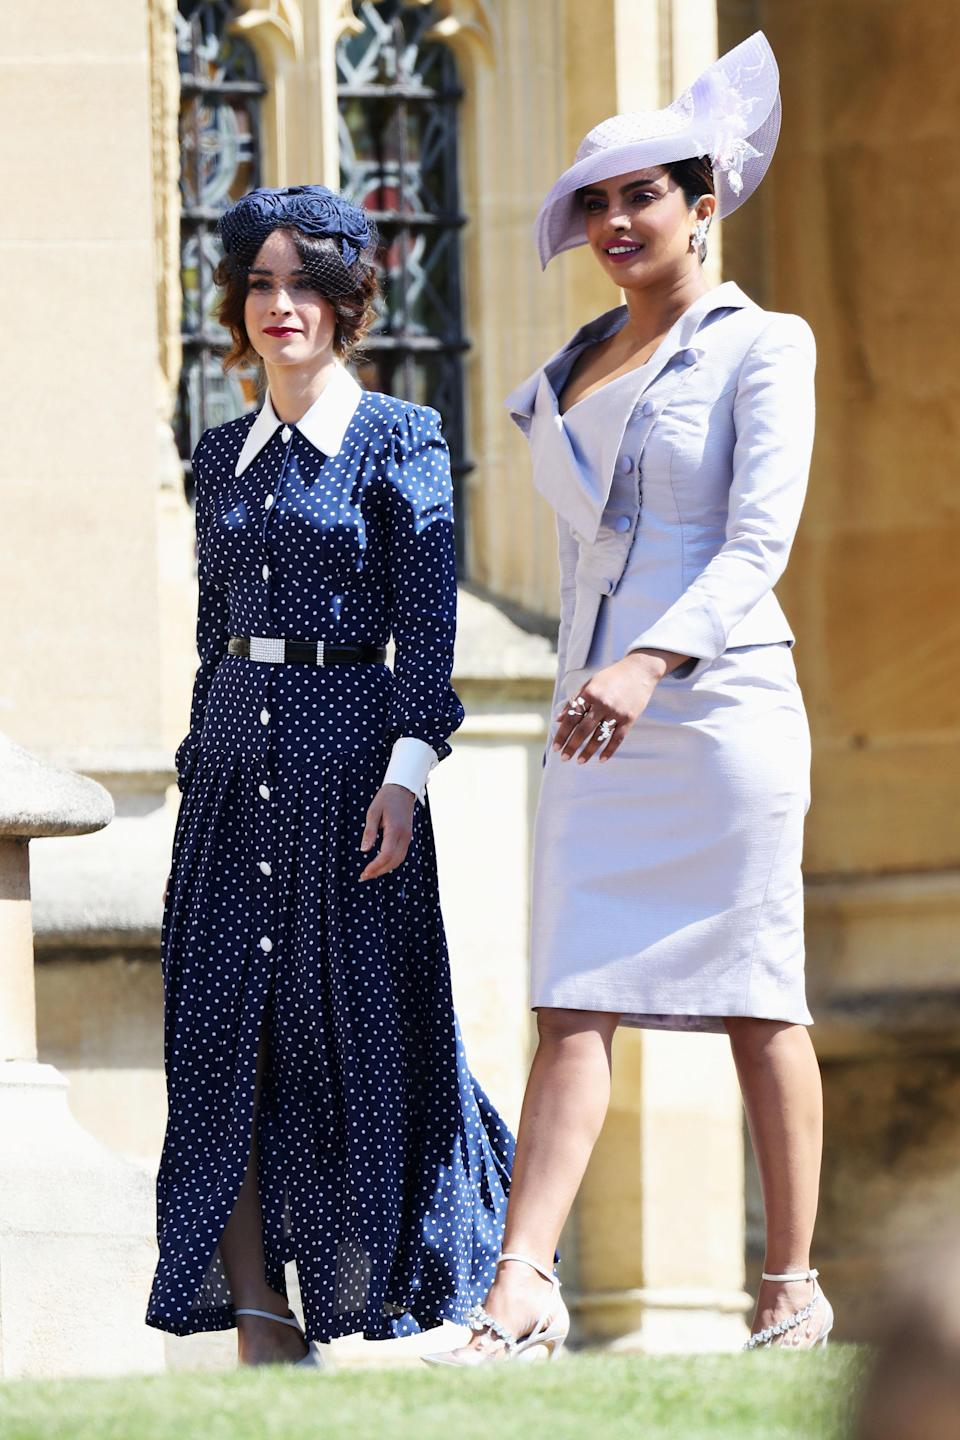 <p>Priyanka Chopra attended Harry and Meghan's wedding in a lavender-hued co-ord by Vivienne Westwood. She later changed into a dior gown. <em>[Photo: Getty]</em> </p>